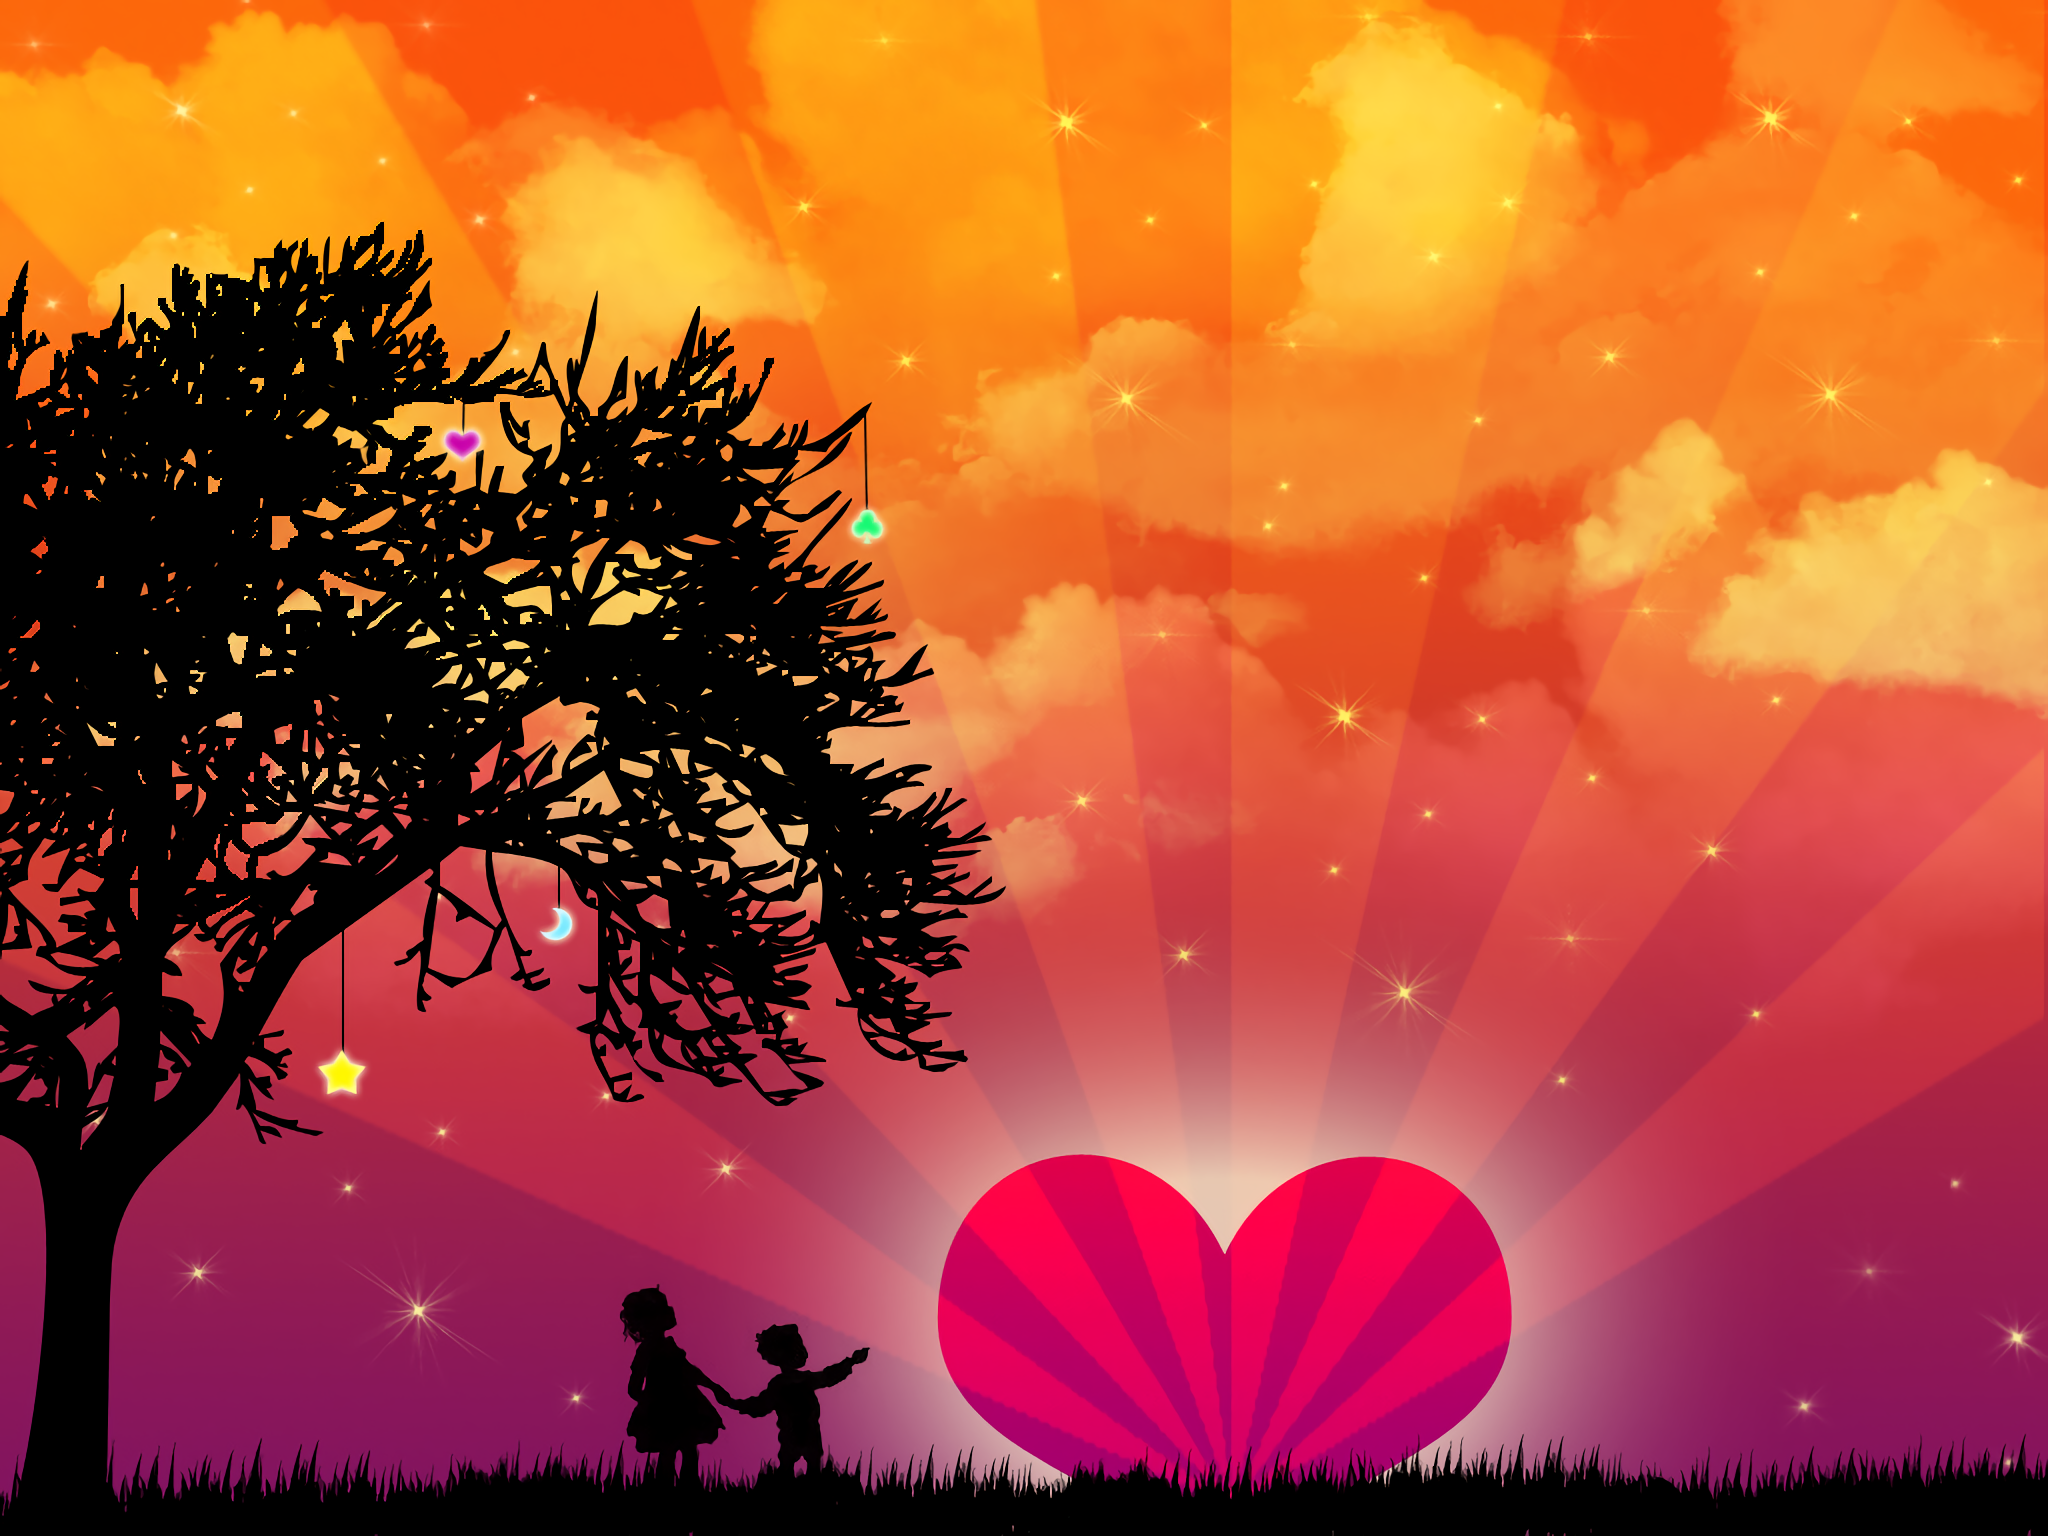 cute love wallpaper full hd download desktop mobile backgrounds